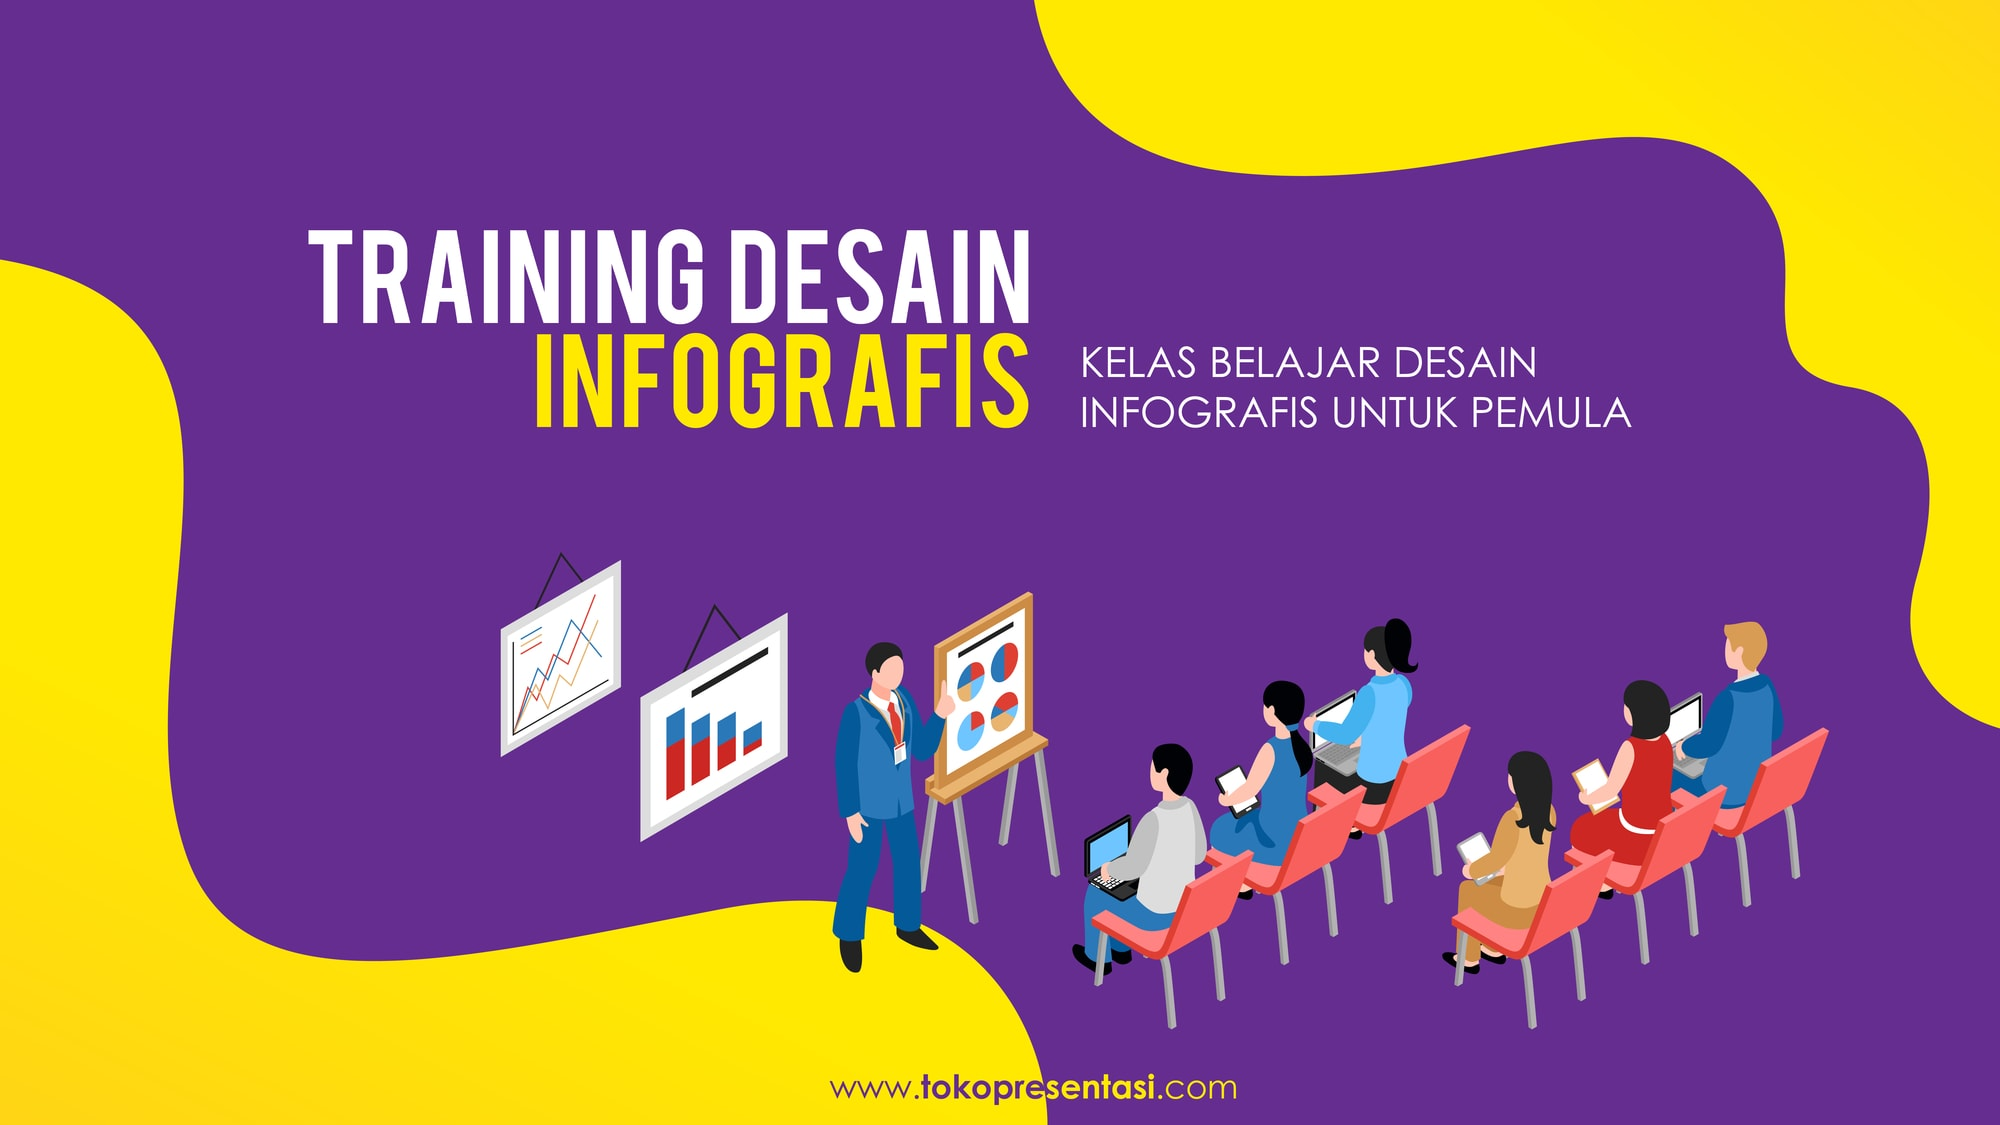 Pelatihan Training Desain Infografis PPT Corporate University United Tractors Tokopresentasi